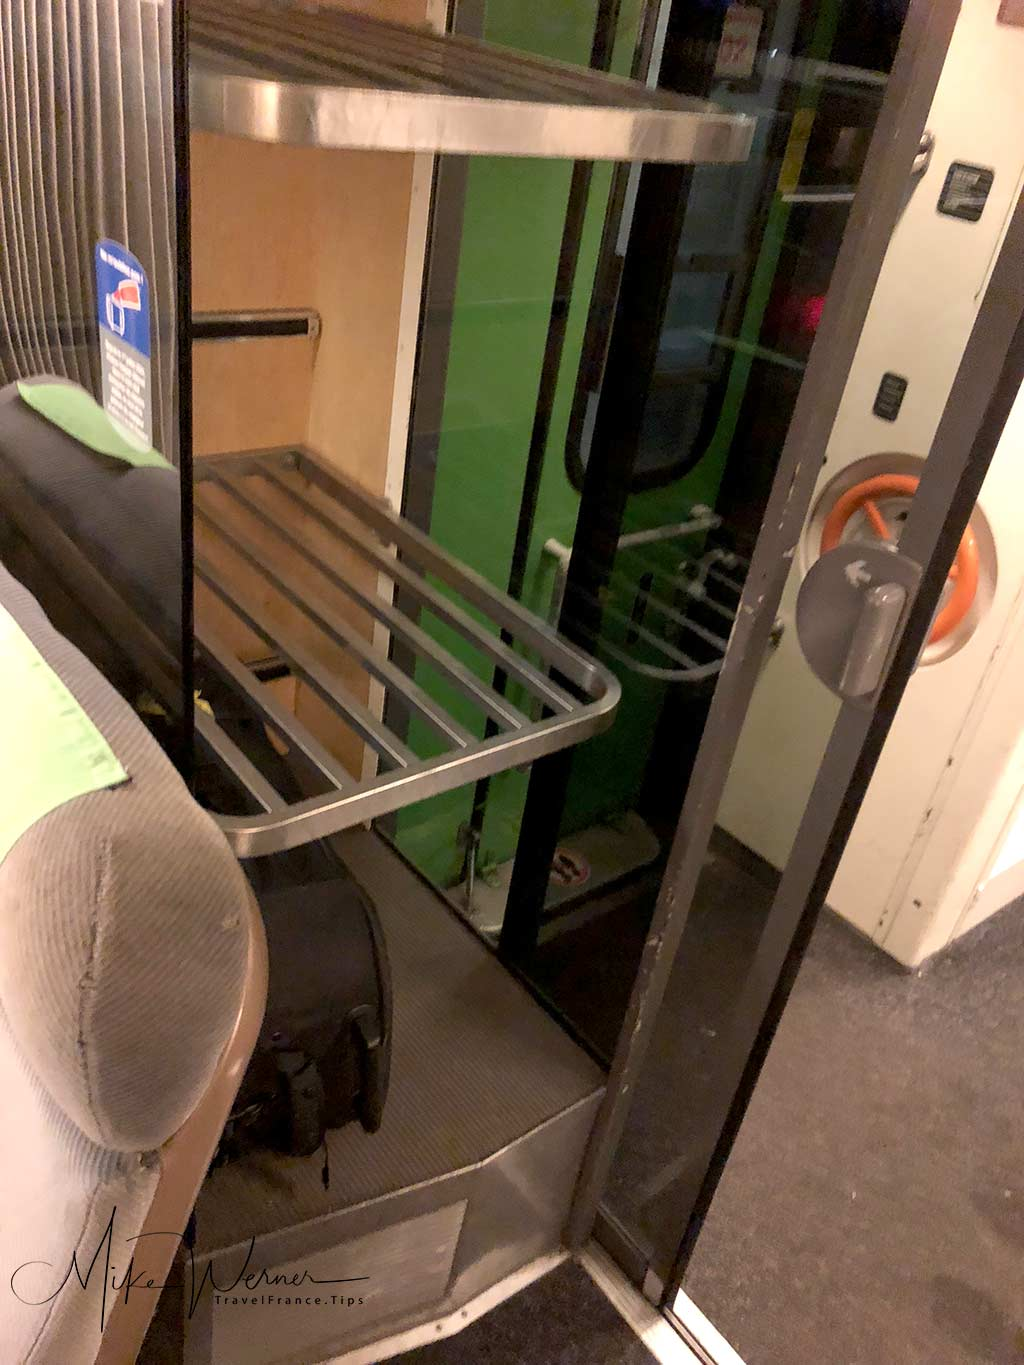 """Luggage area in the old """"Corail"""" Intercites train"""